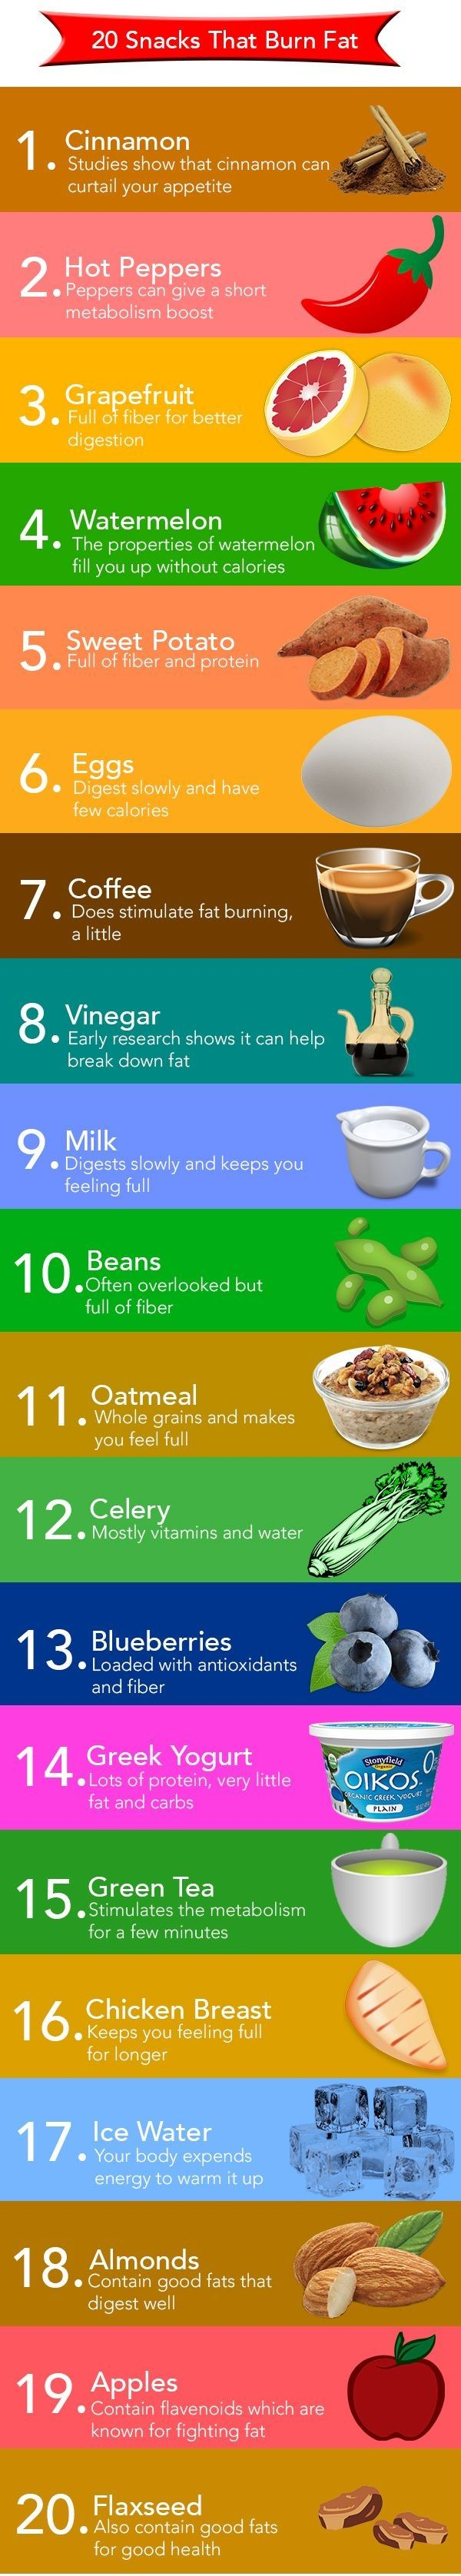 Weight Loss - Simple Foods that Burn Fat. Live. Outliveonline.com